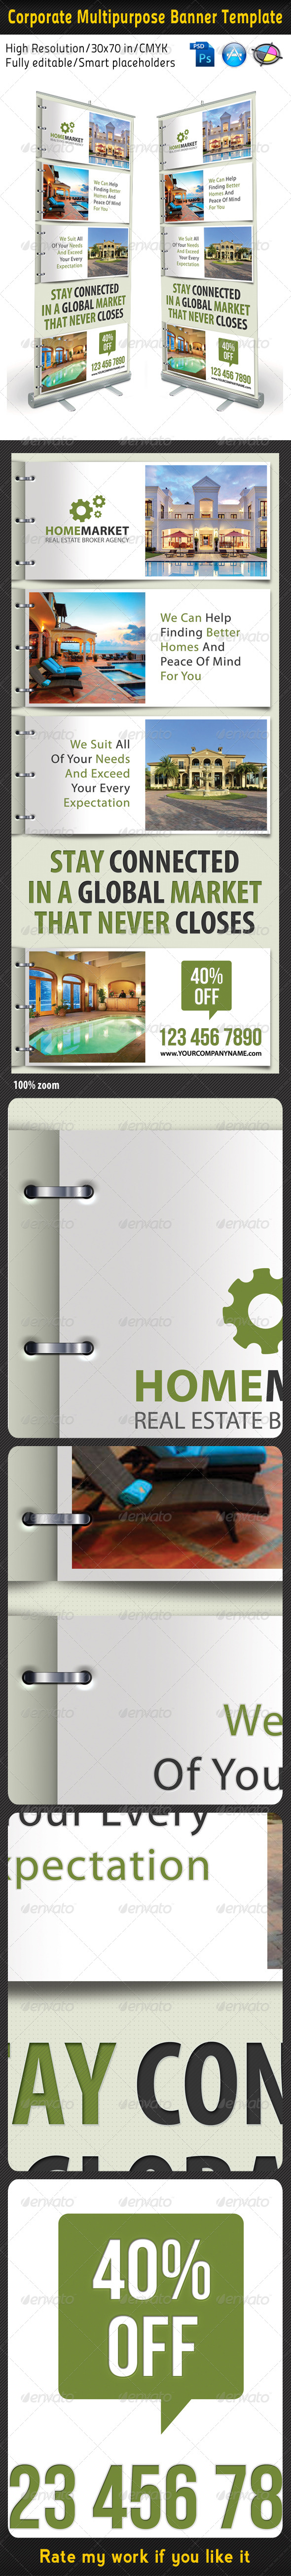 Corporate Real Estate Banner Template - Signage Print Templates